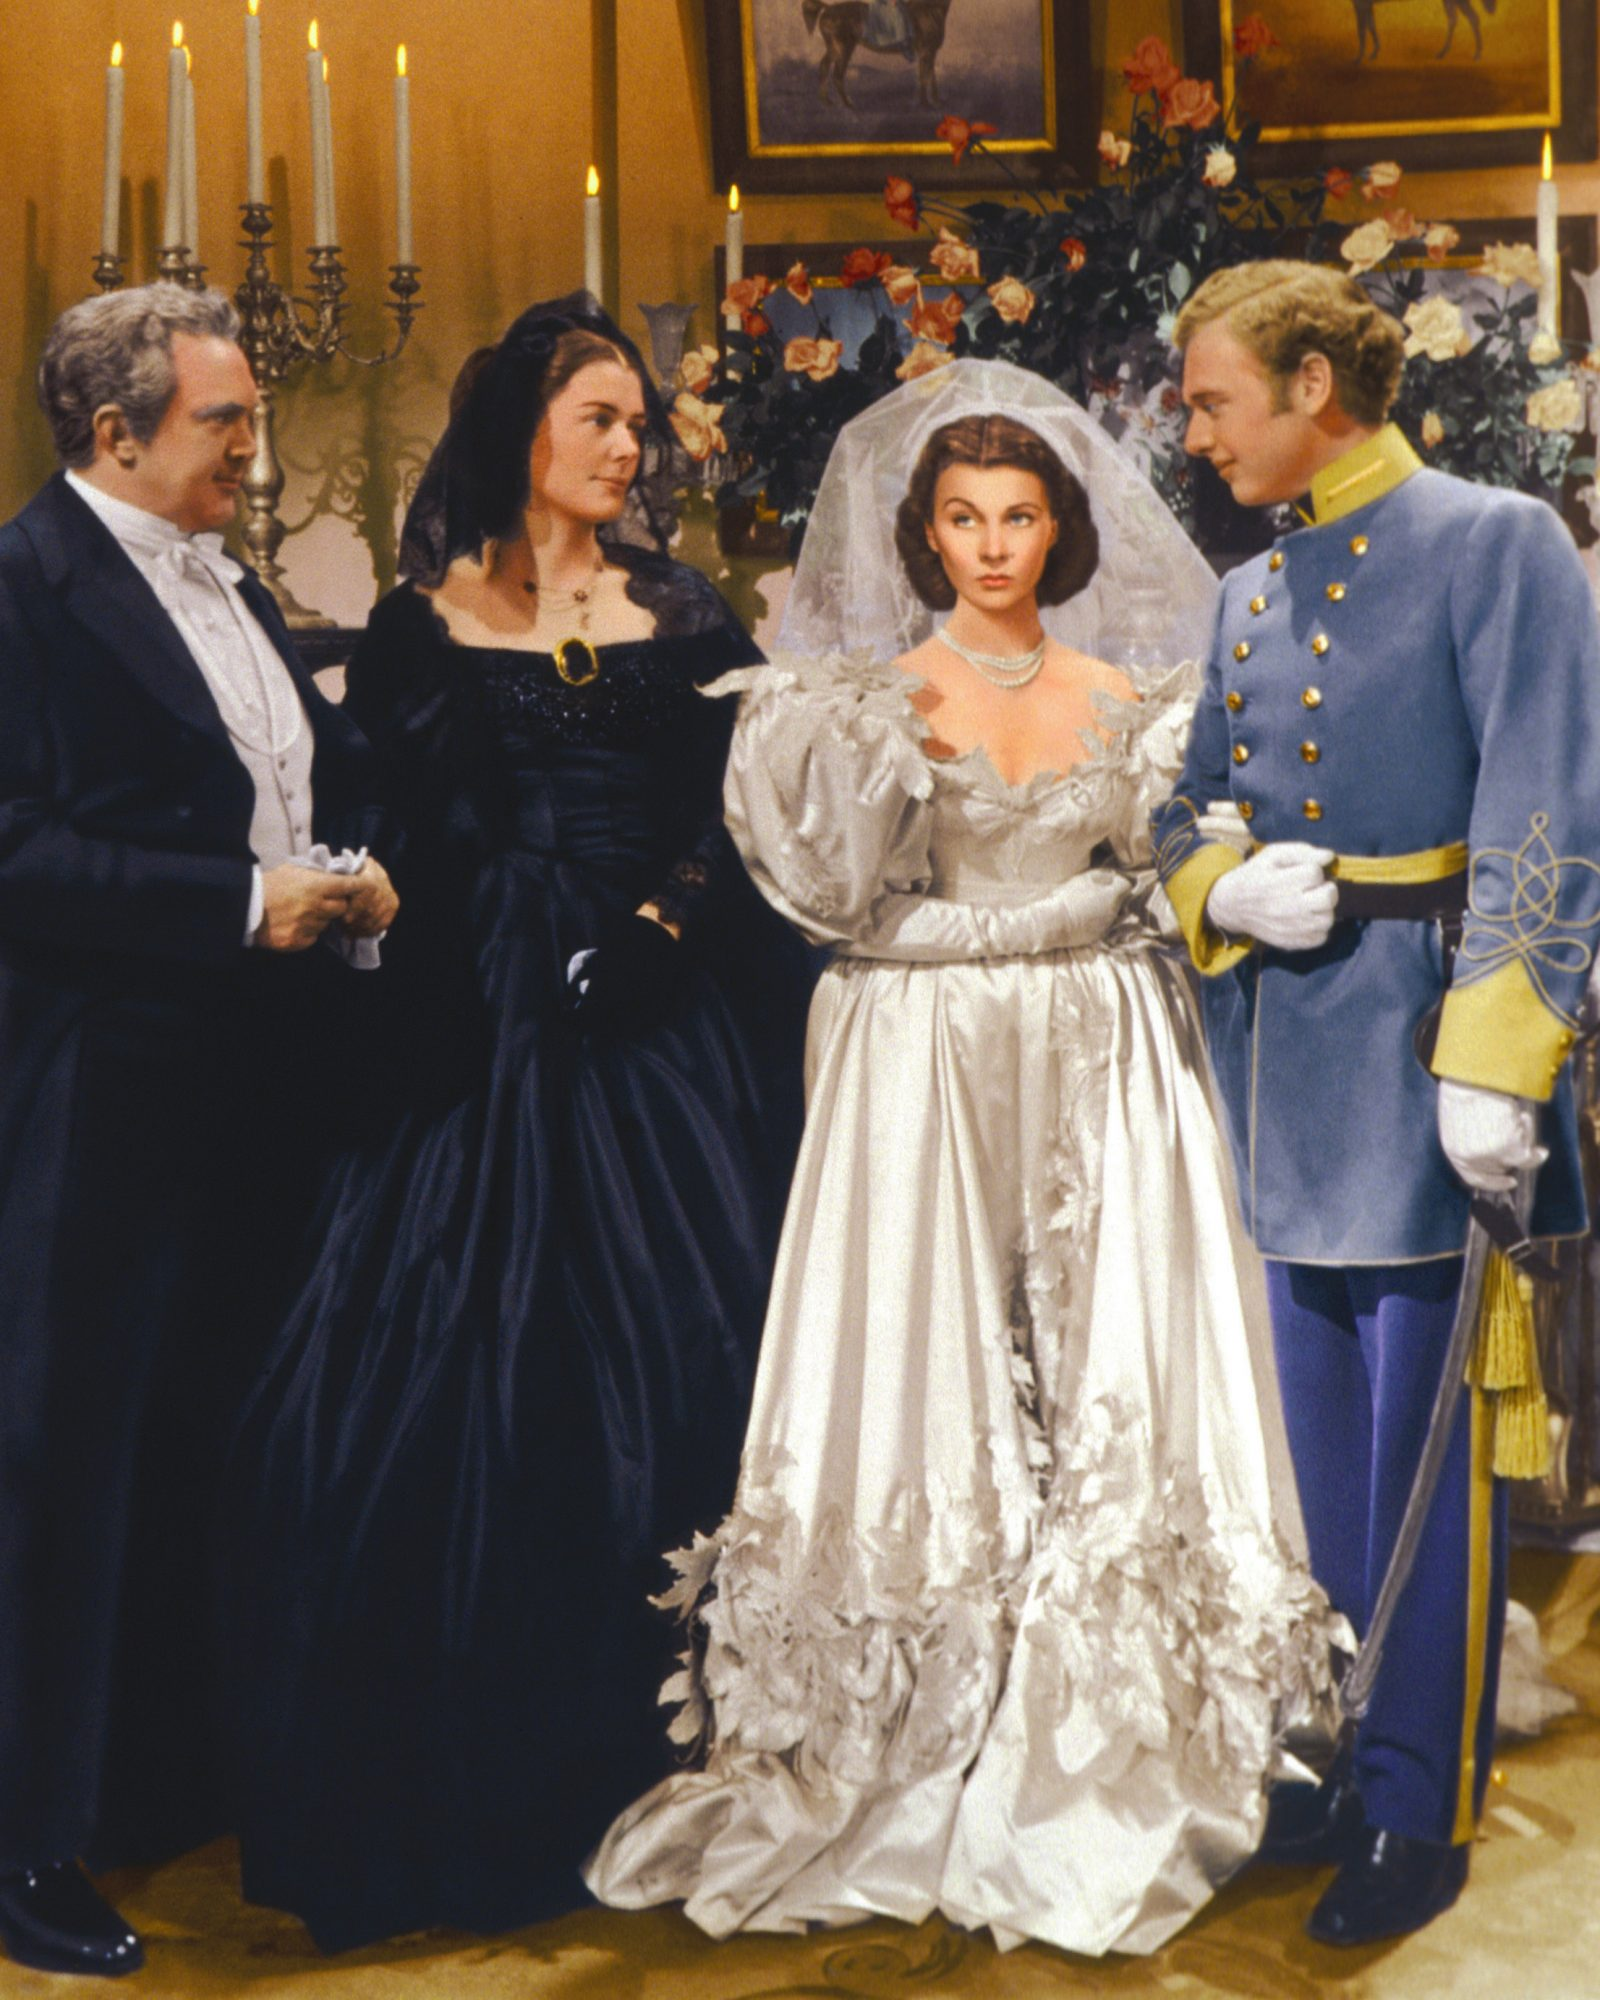 Gone With the Wind wedding dress